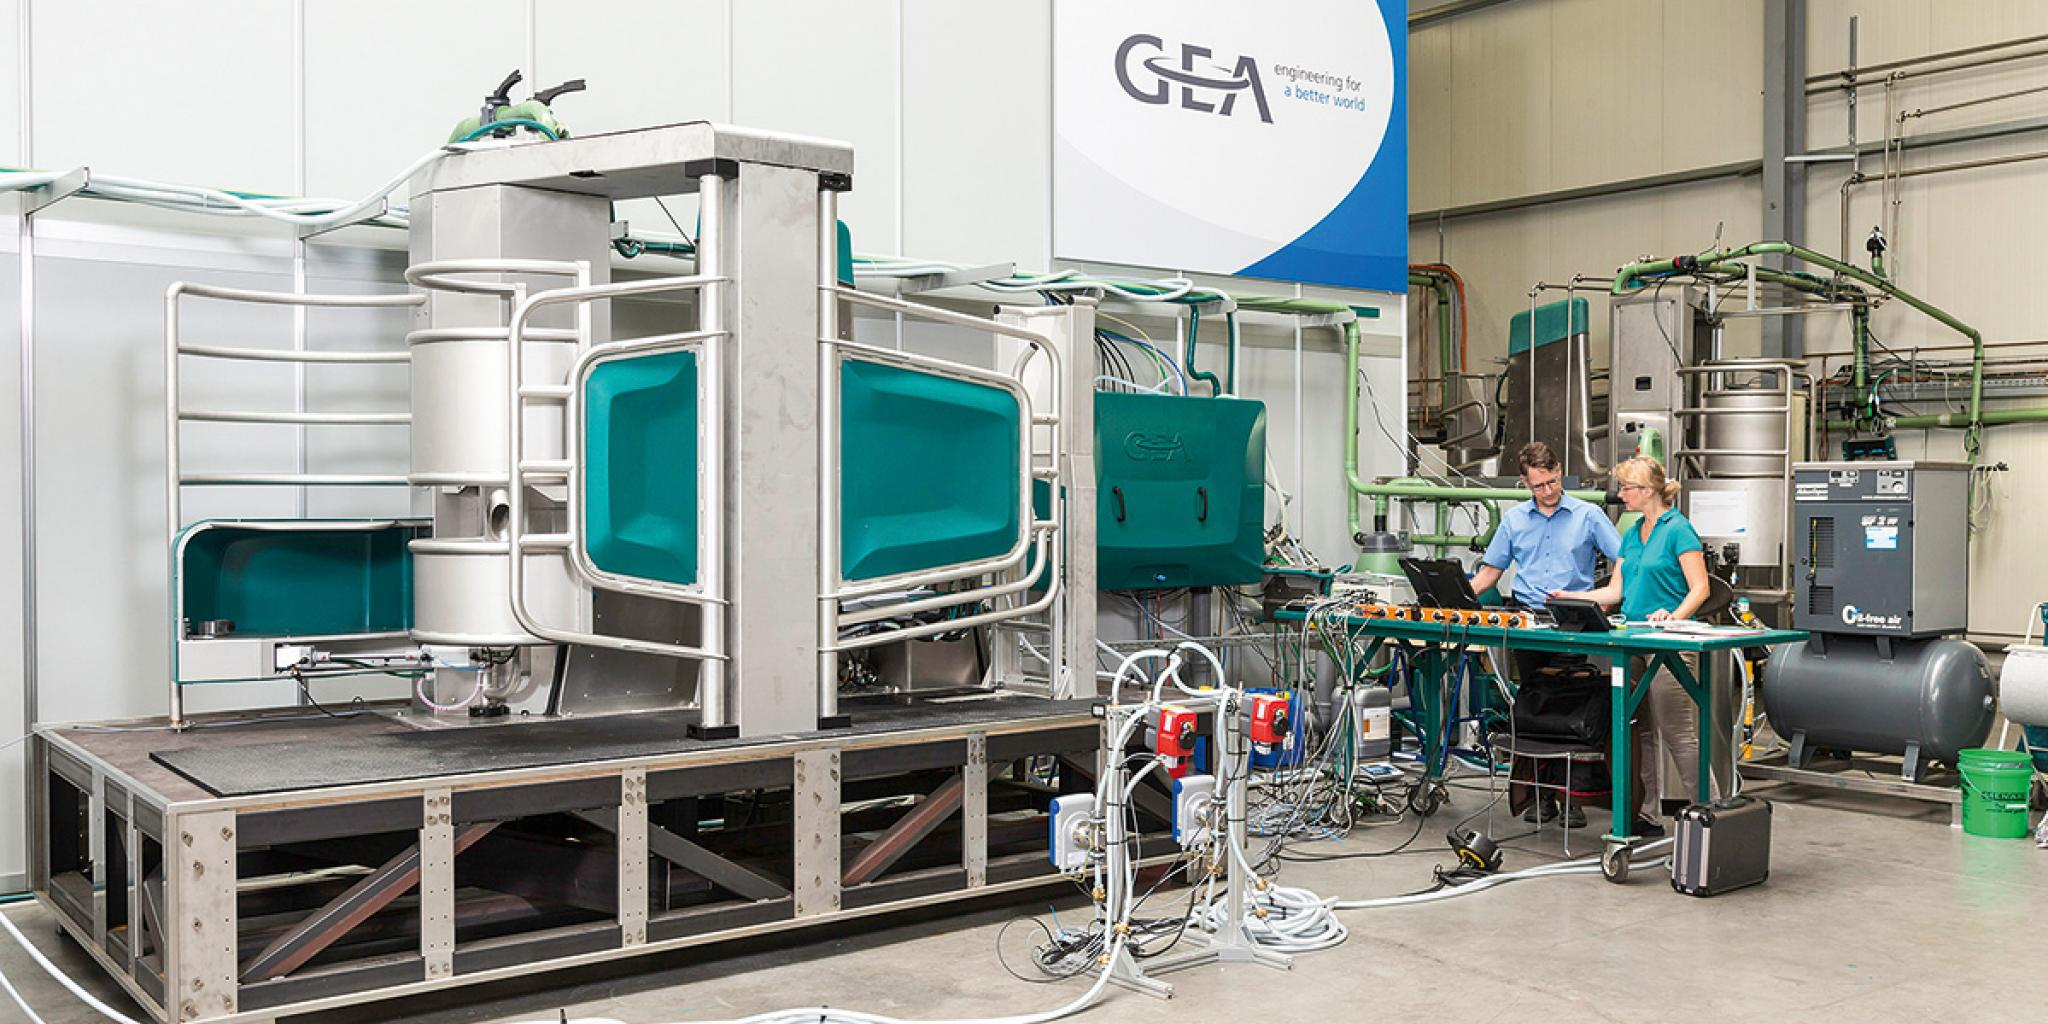 GEA Monobox milking robot tested